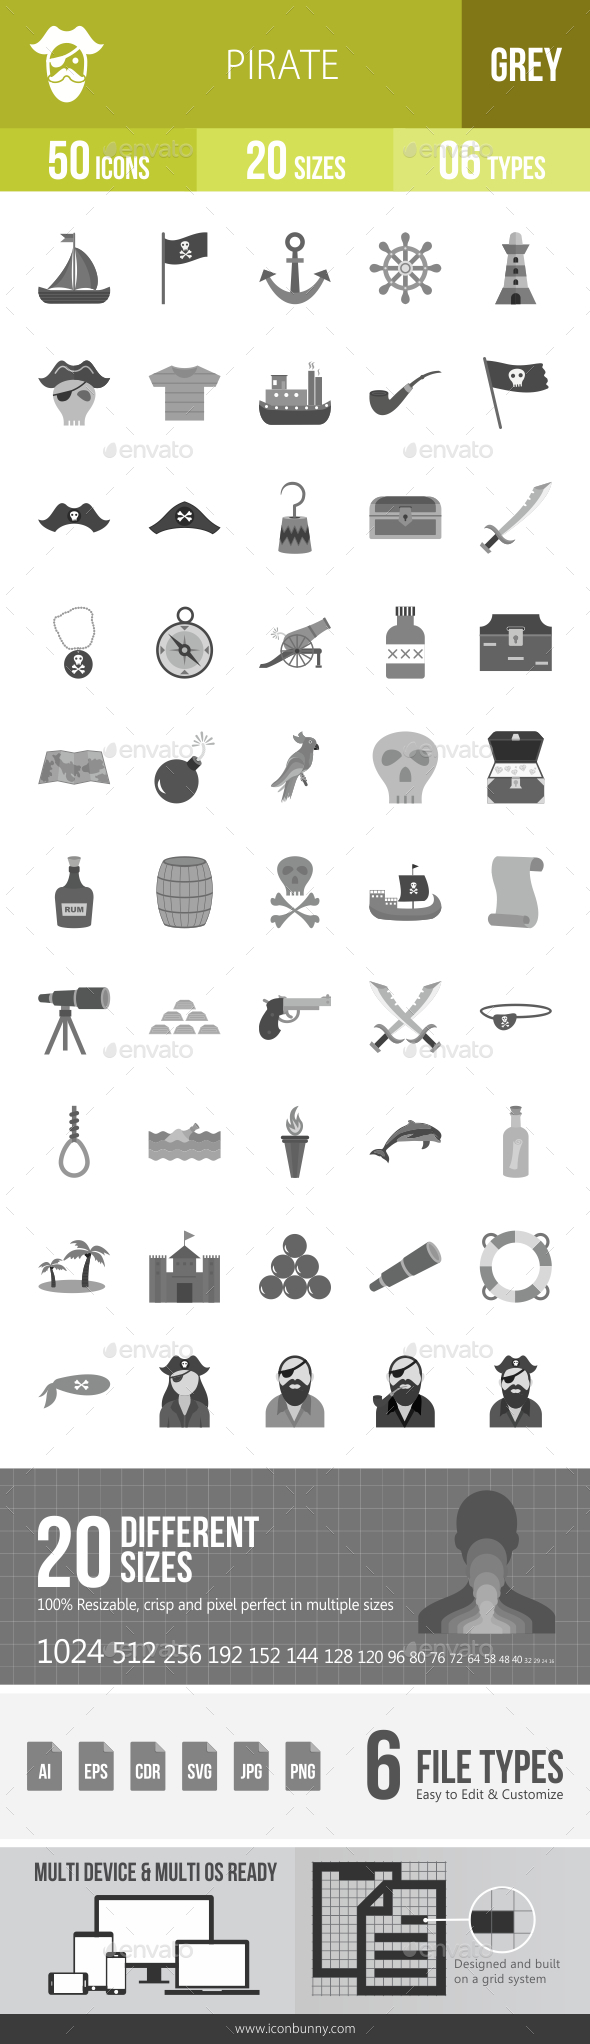 Pirate Greyscale Icons - Icons